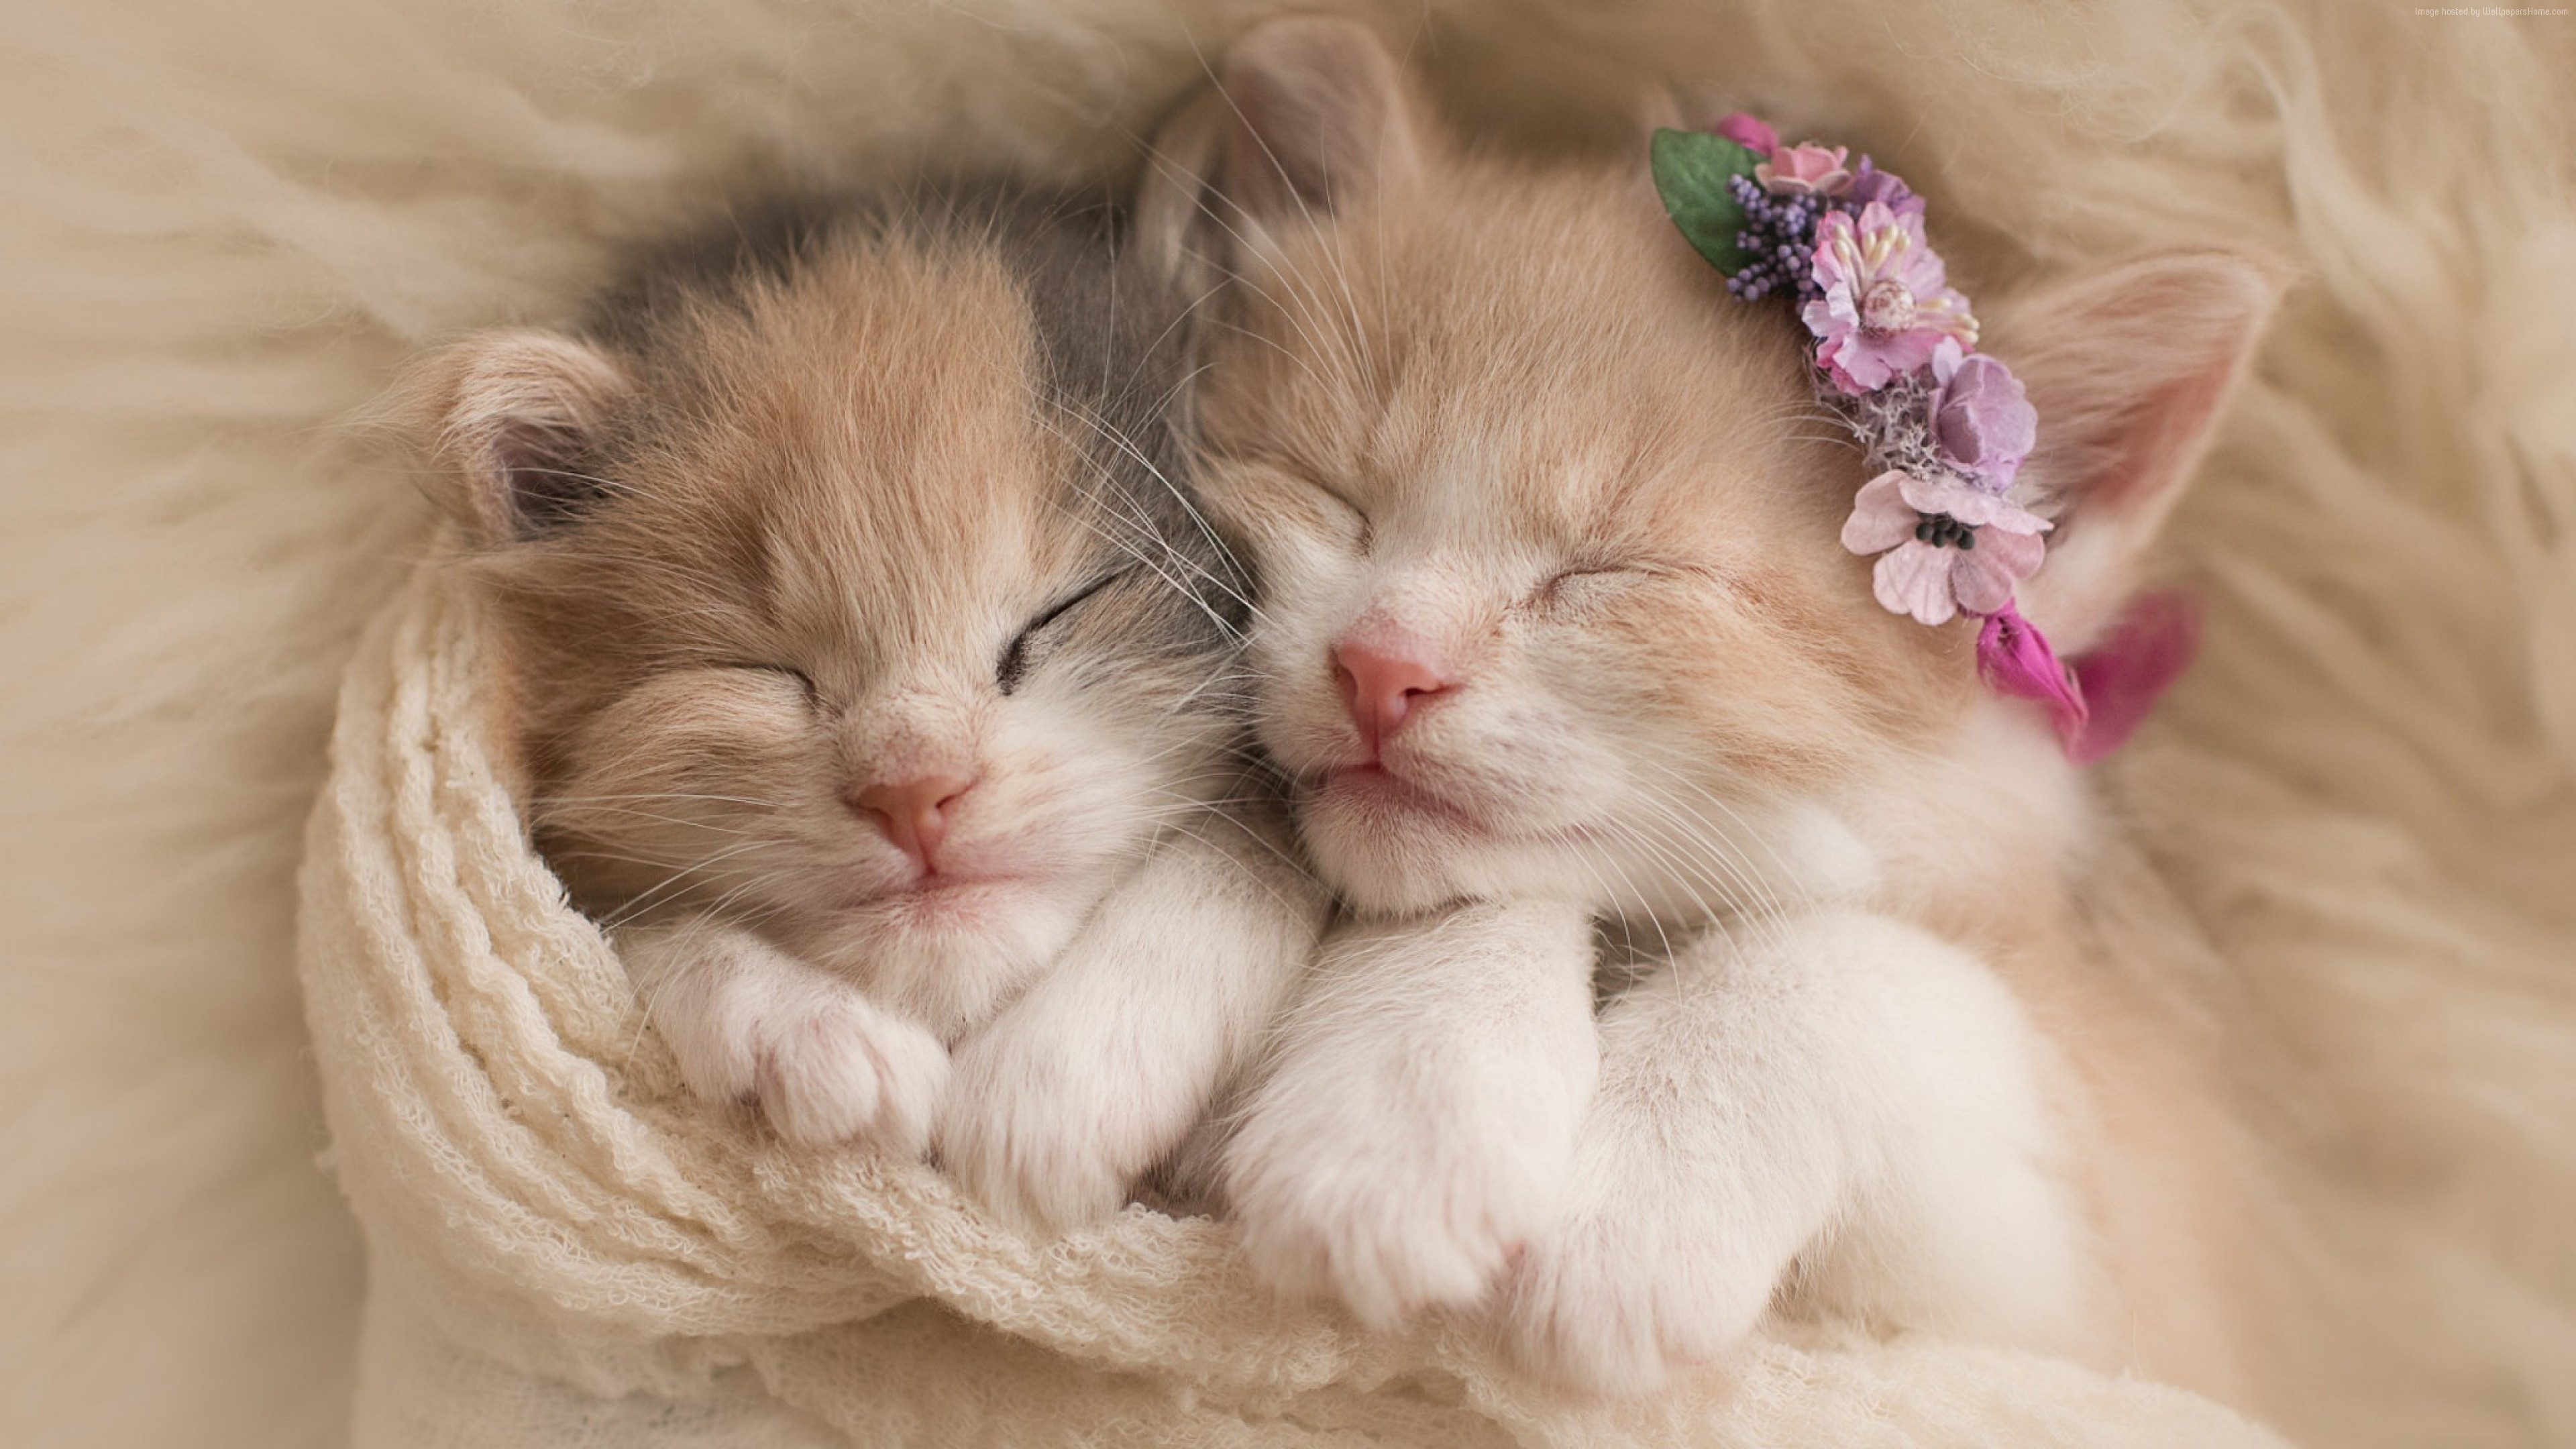 Wallpaper Kittens Cats Cute Animals Wallpaper Download High Resolution 4k Wallpaper